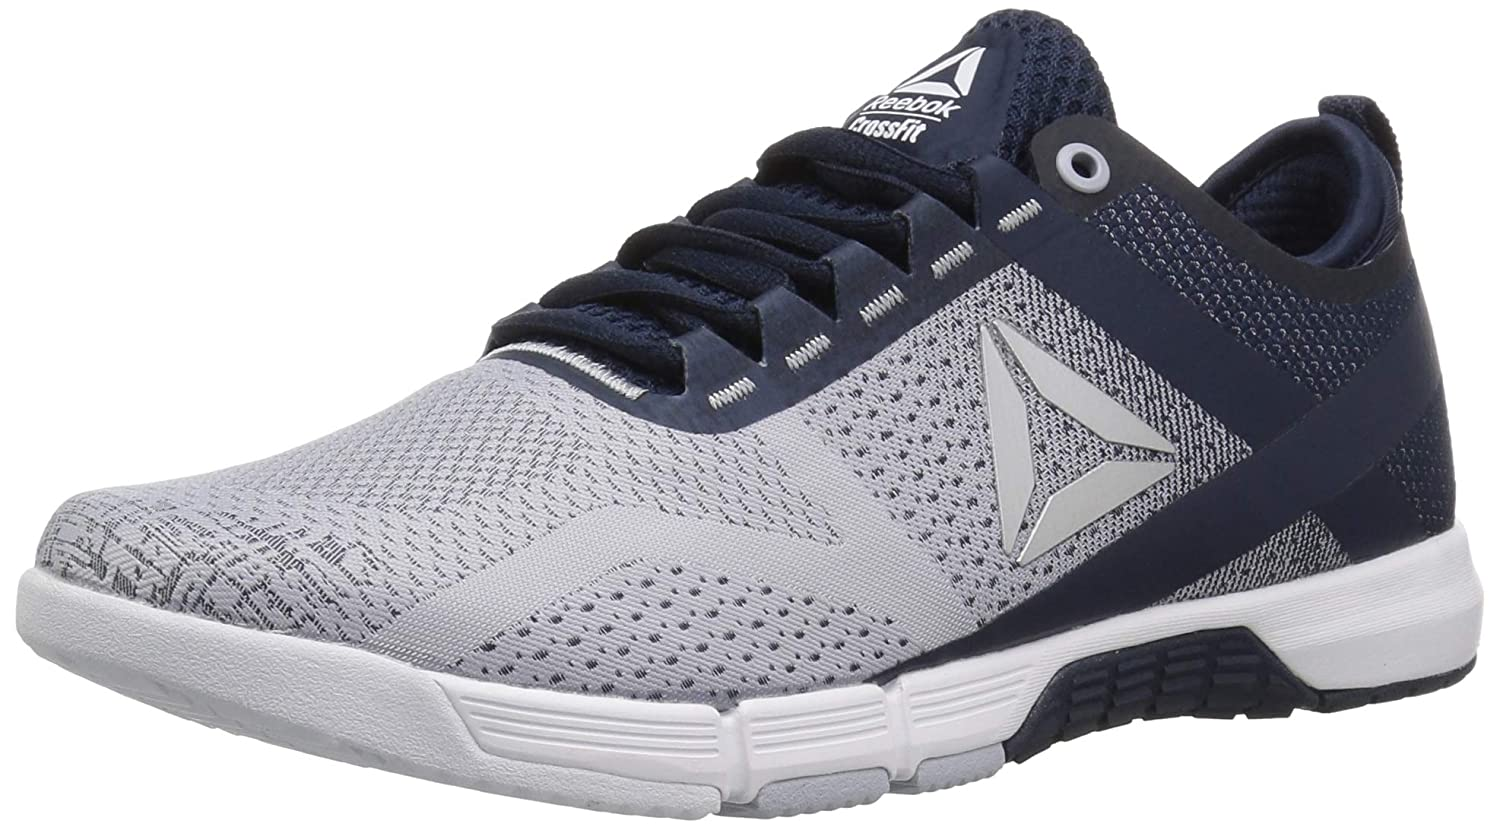 Reebok Women's CROSSFIT Grace Tr Cross Trainer